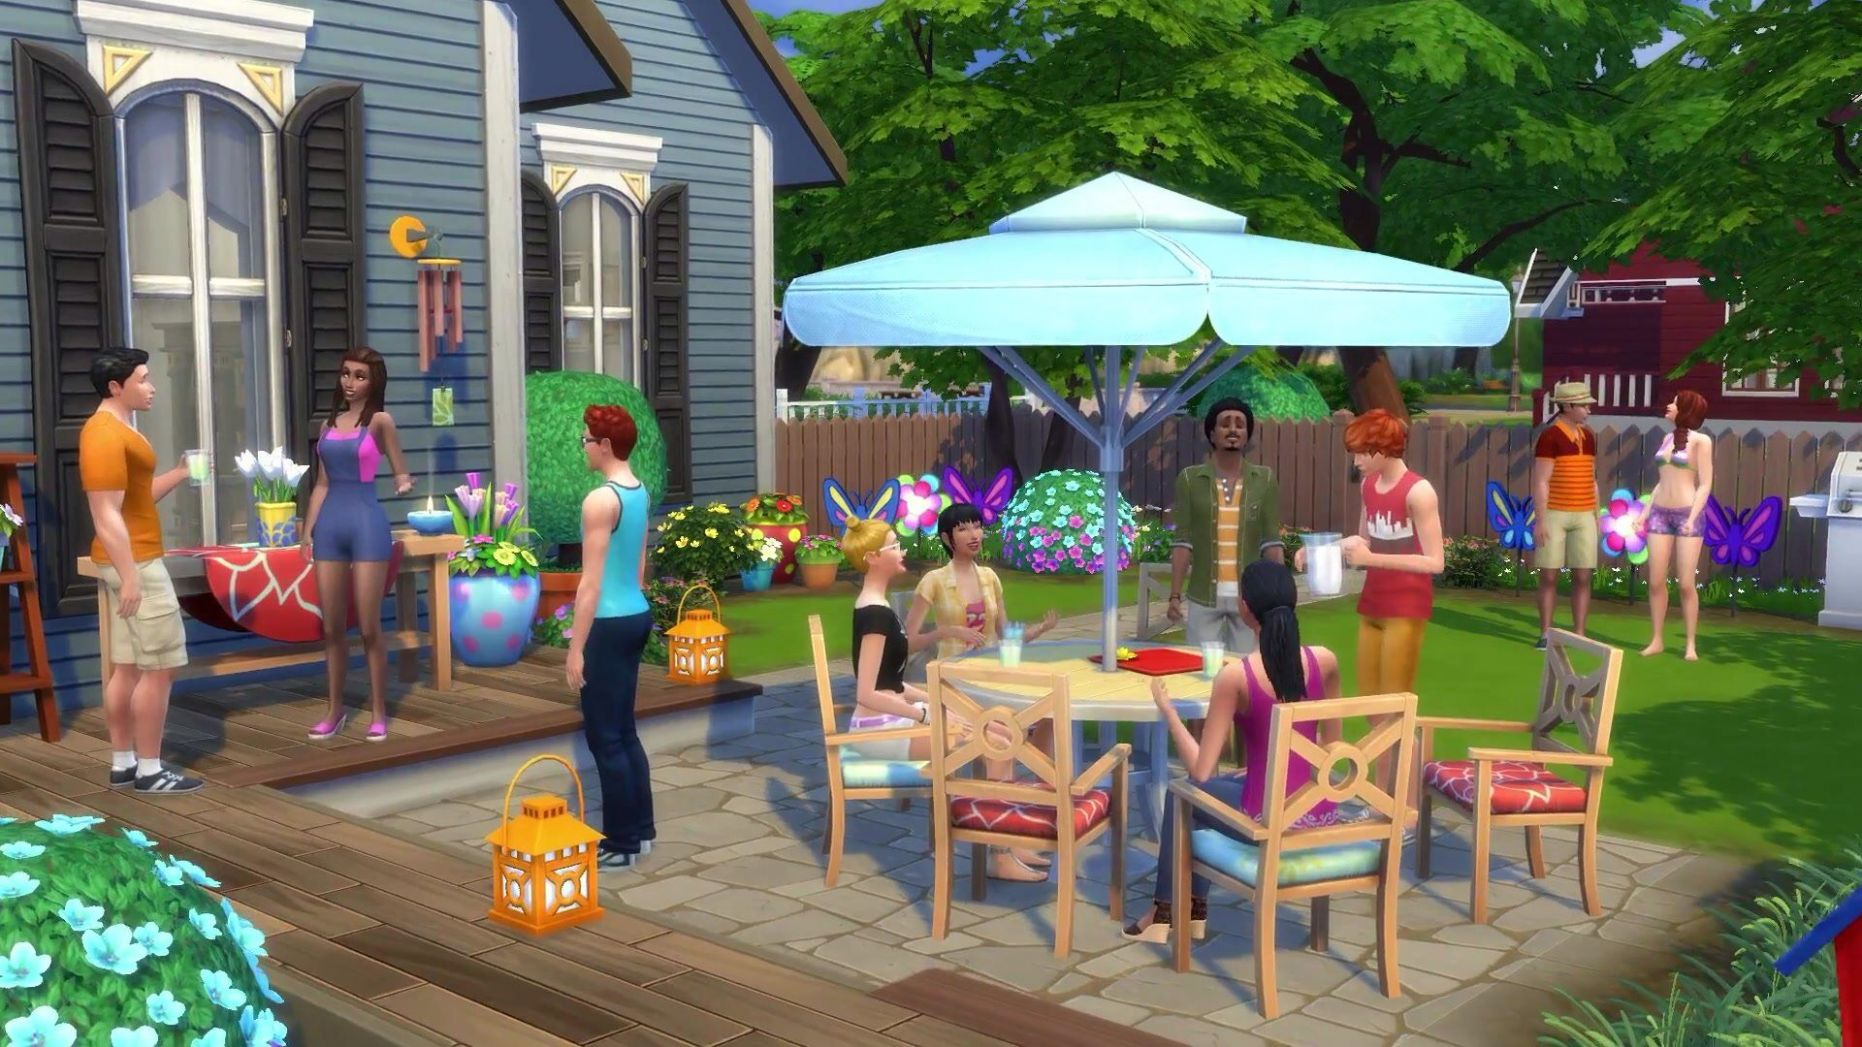 The Sims 9- Backyard Stuff | Sims 9 backyard stuff, Backyard, Sims - backyard ideas sims 4